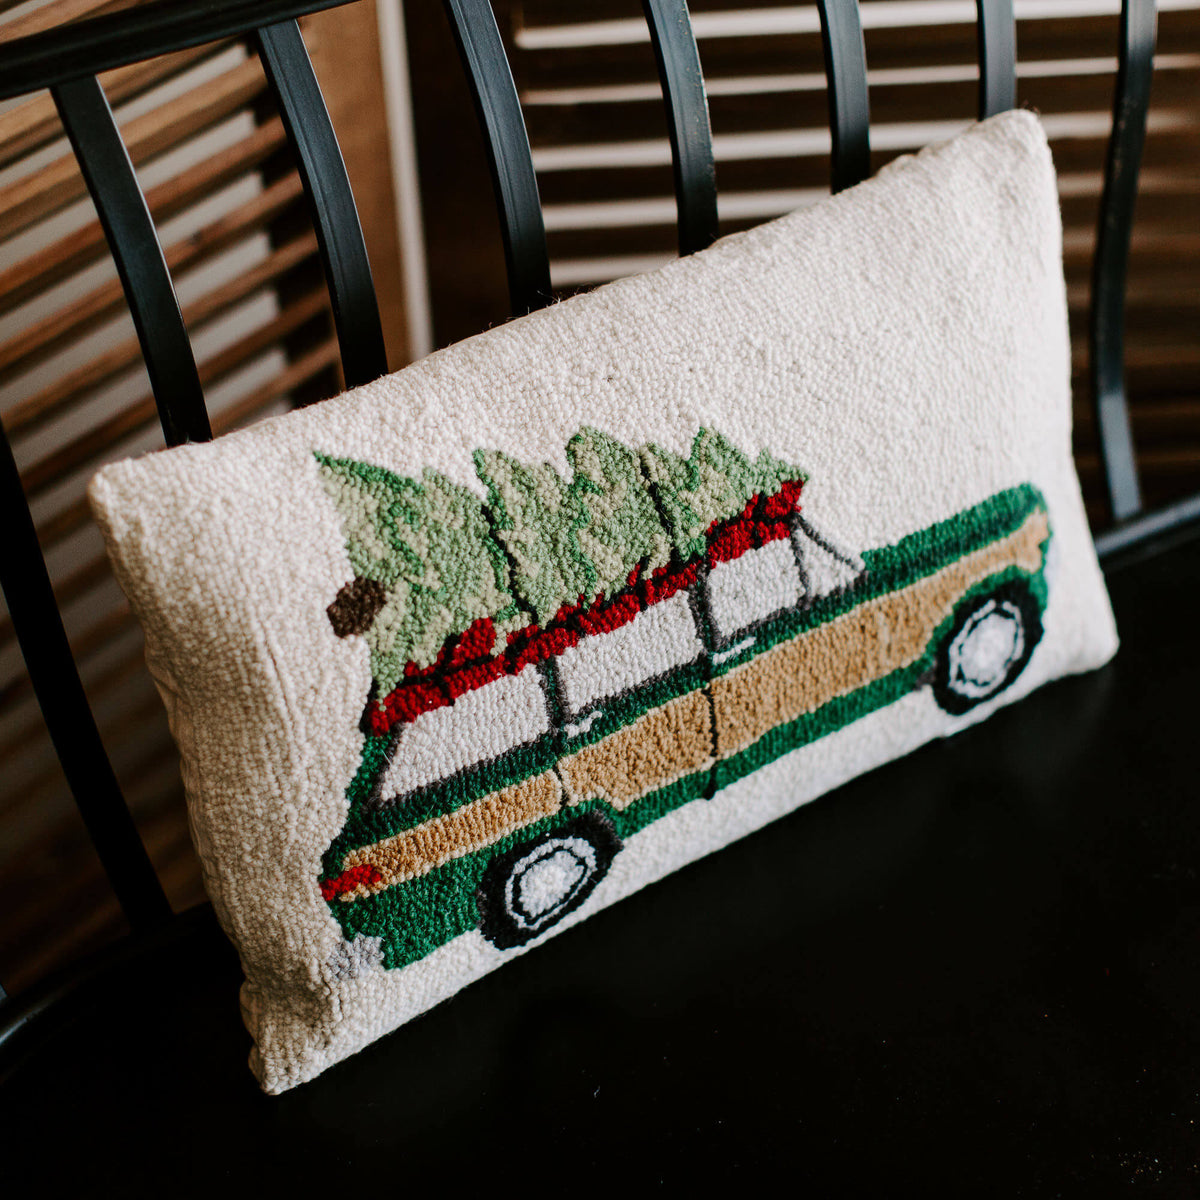 close up detail of a vintage wool loop pillow with an old jeep carrying a Christmas tree on top, resting on a black bench